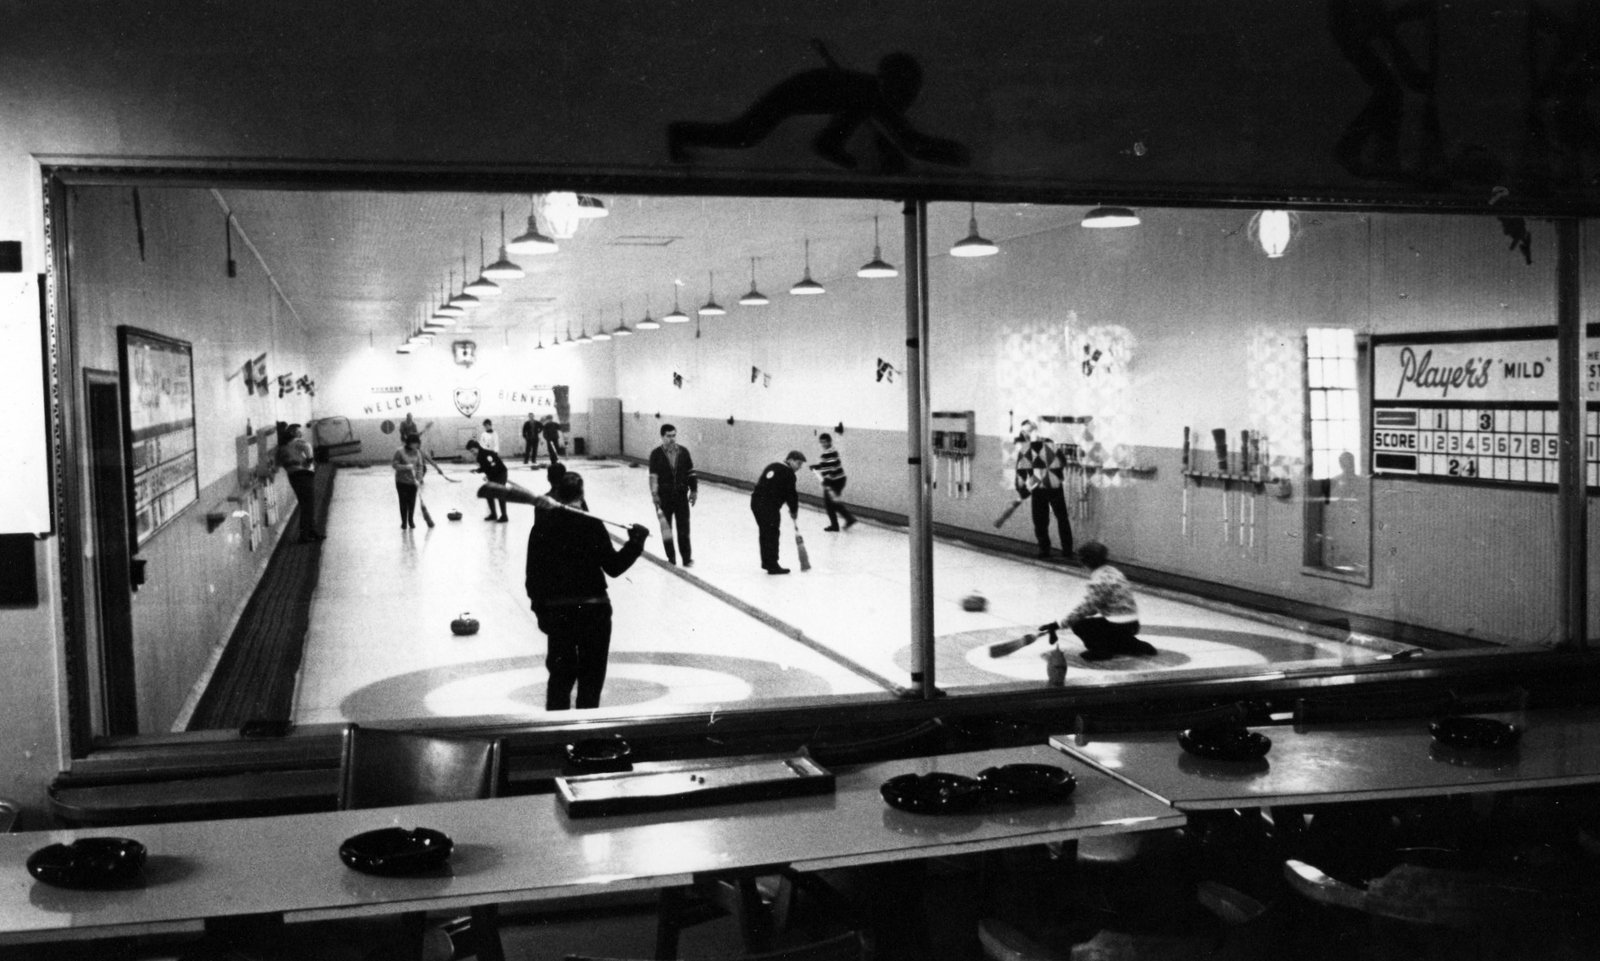 Alma, Club de curling Riverbend 1, p.204